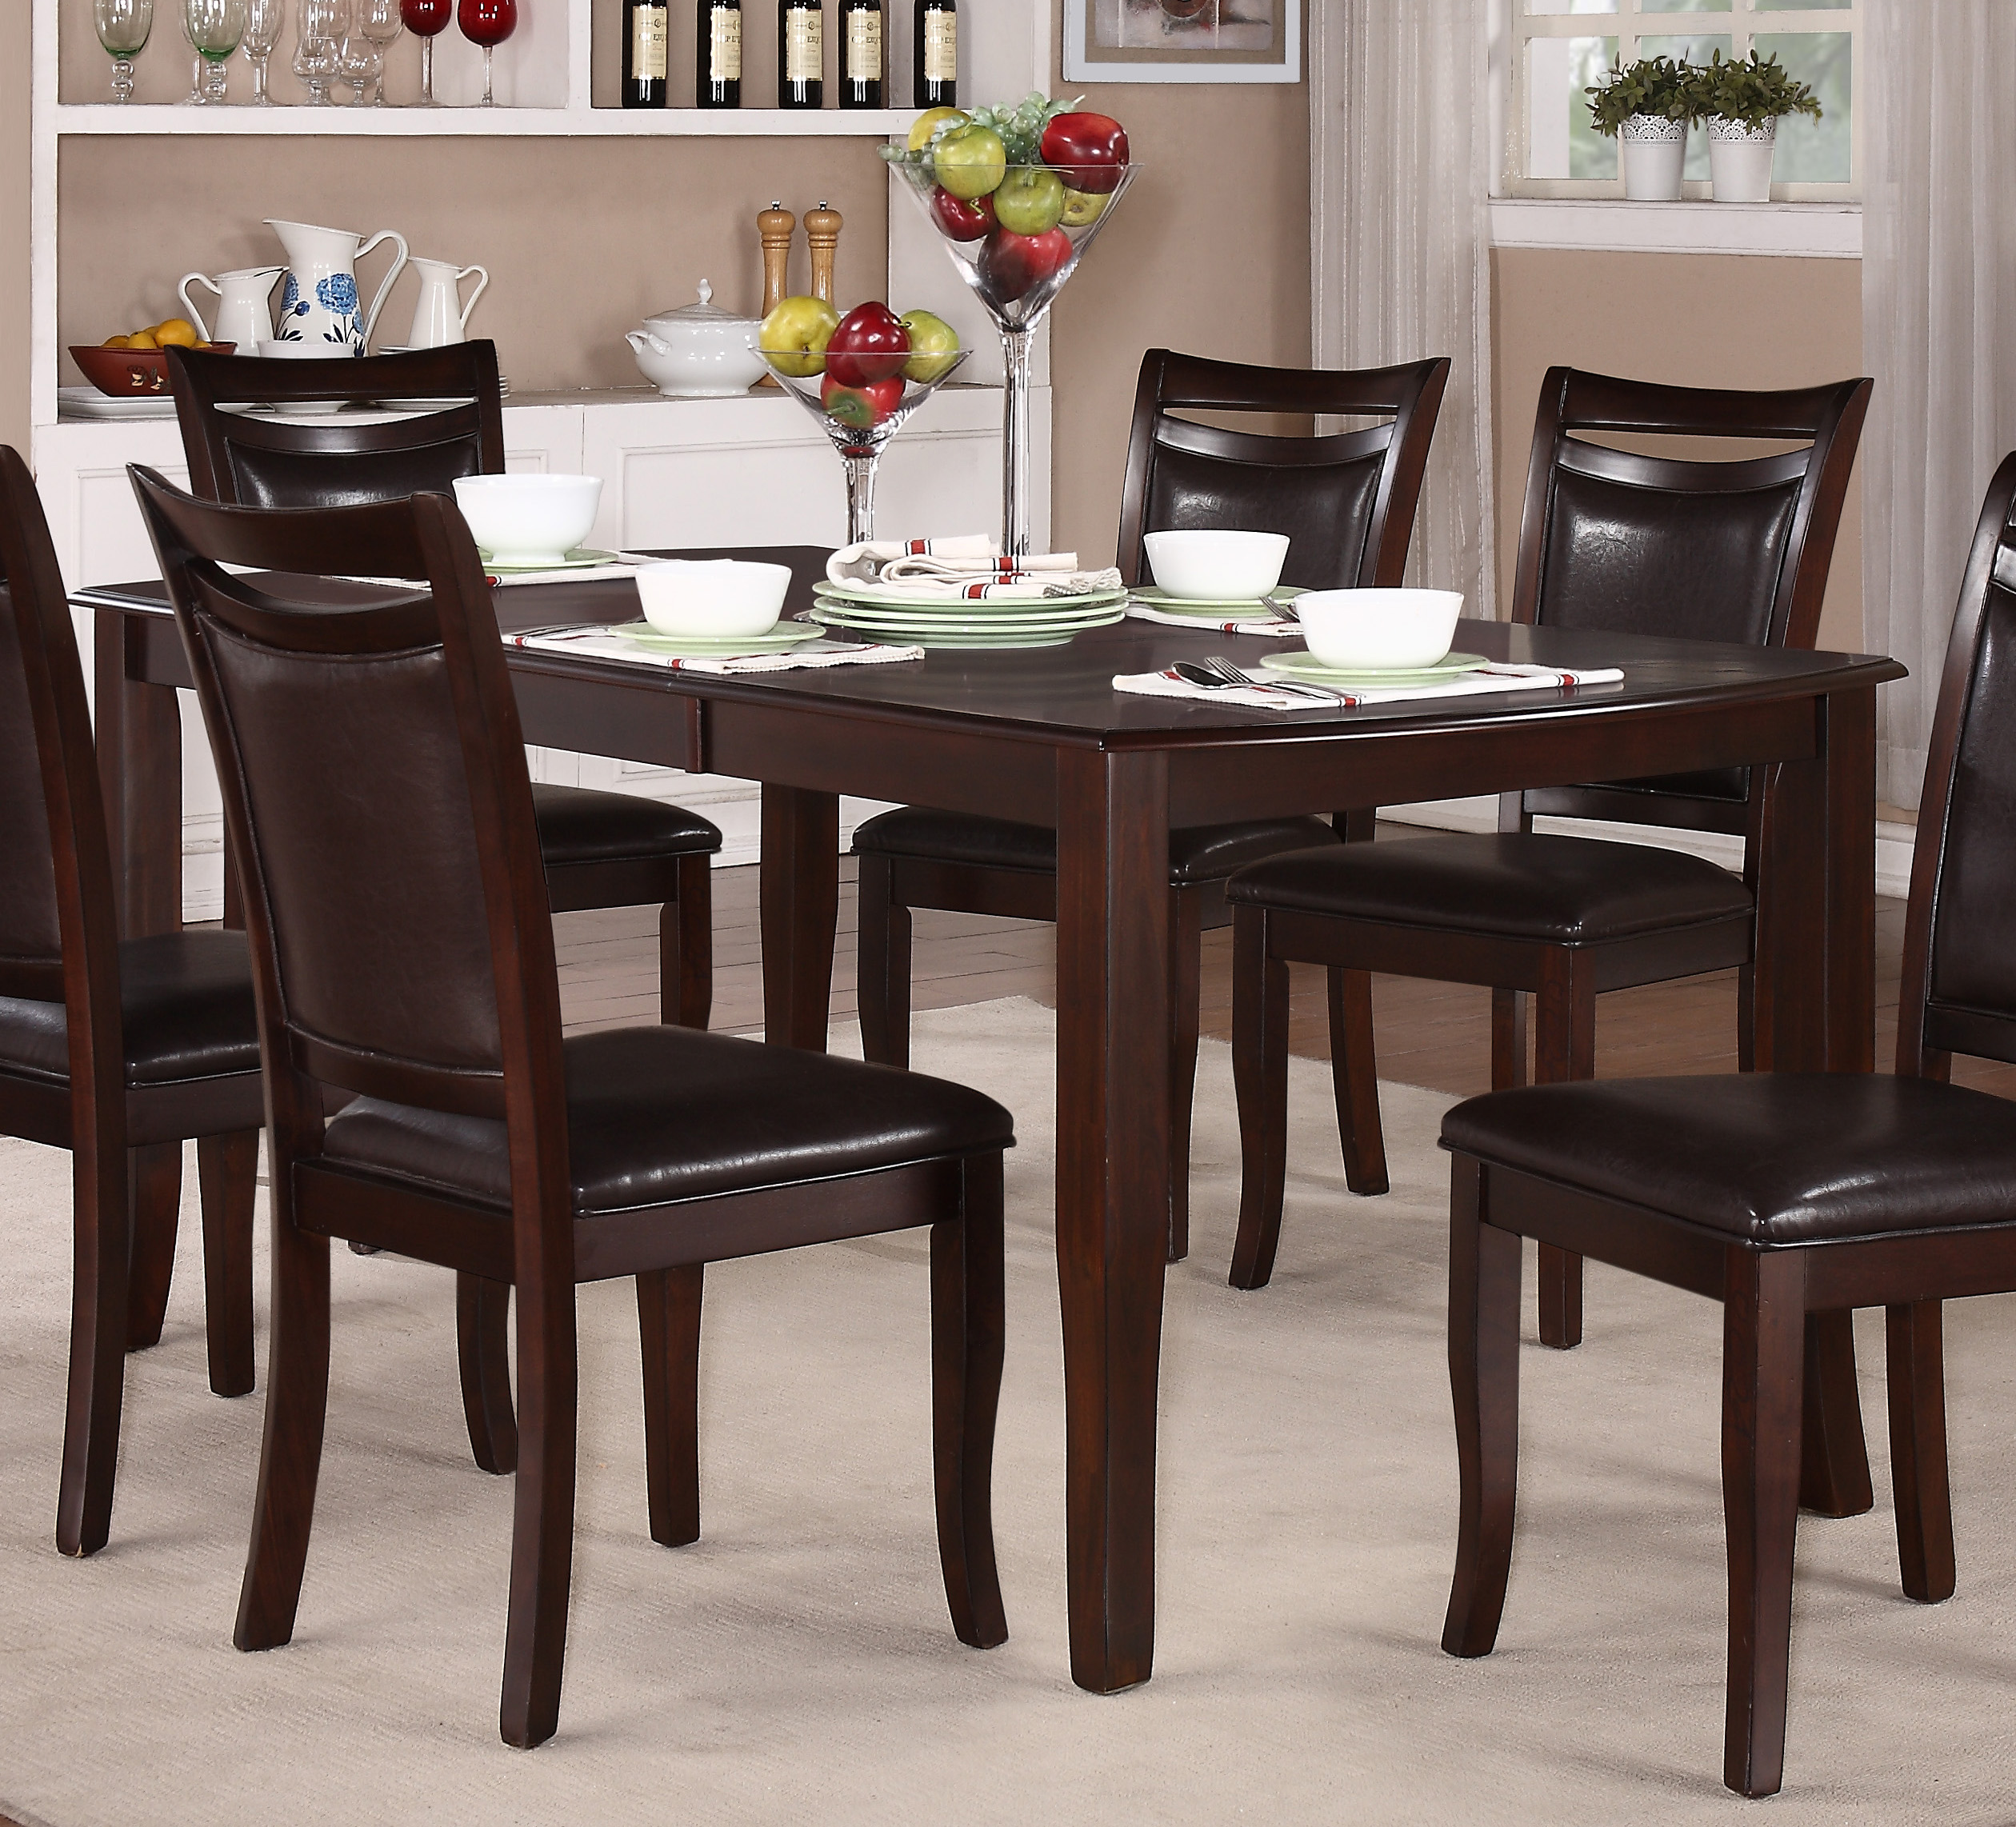 Dining Room Furniture Dallas Tx: Homelegance Maeve Dining Table Dallas TX